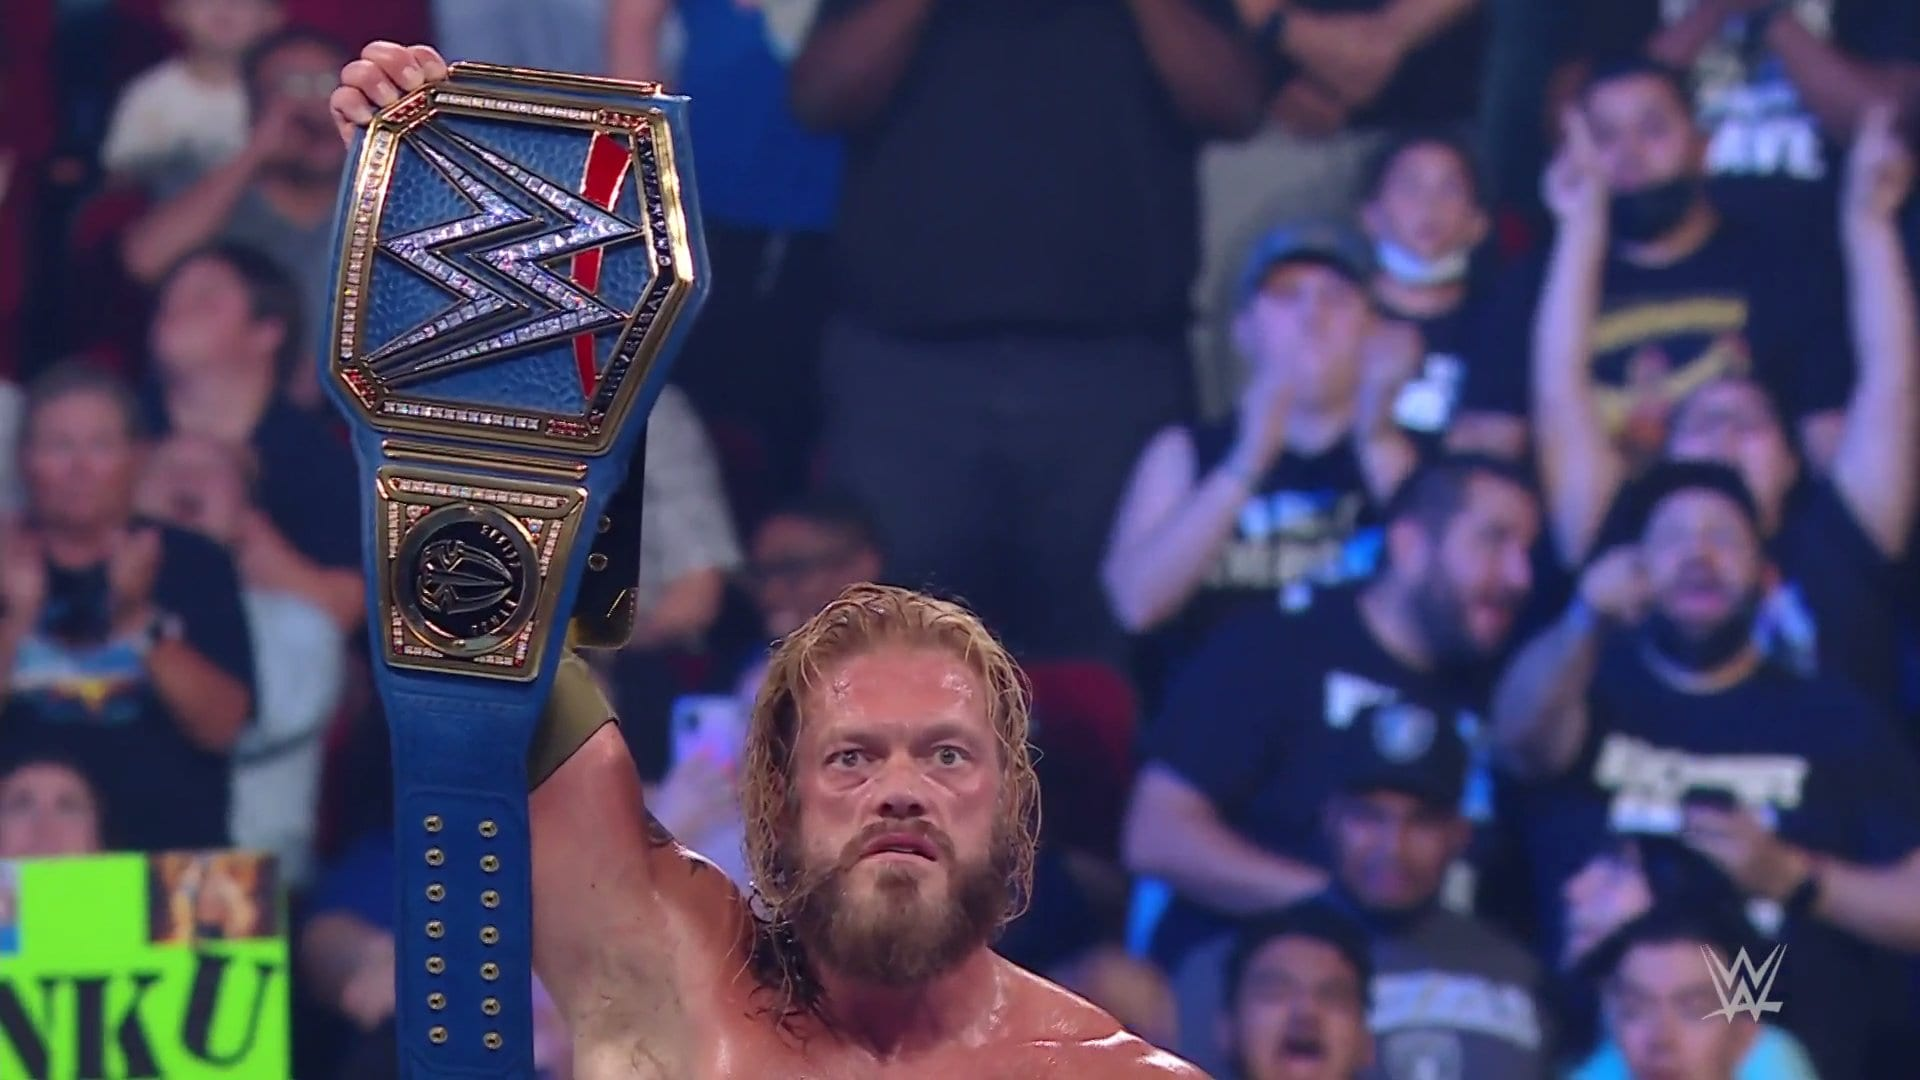 WWE SmackDown Results – WWE Returns To The Road, Money In The Bank Go-Home Show, More